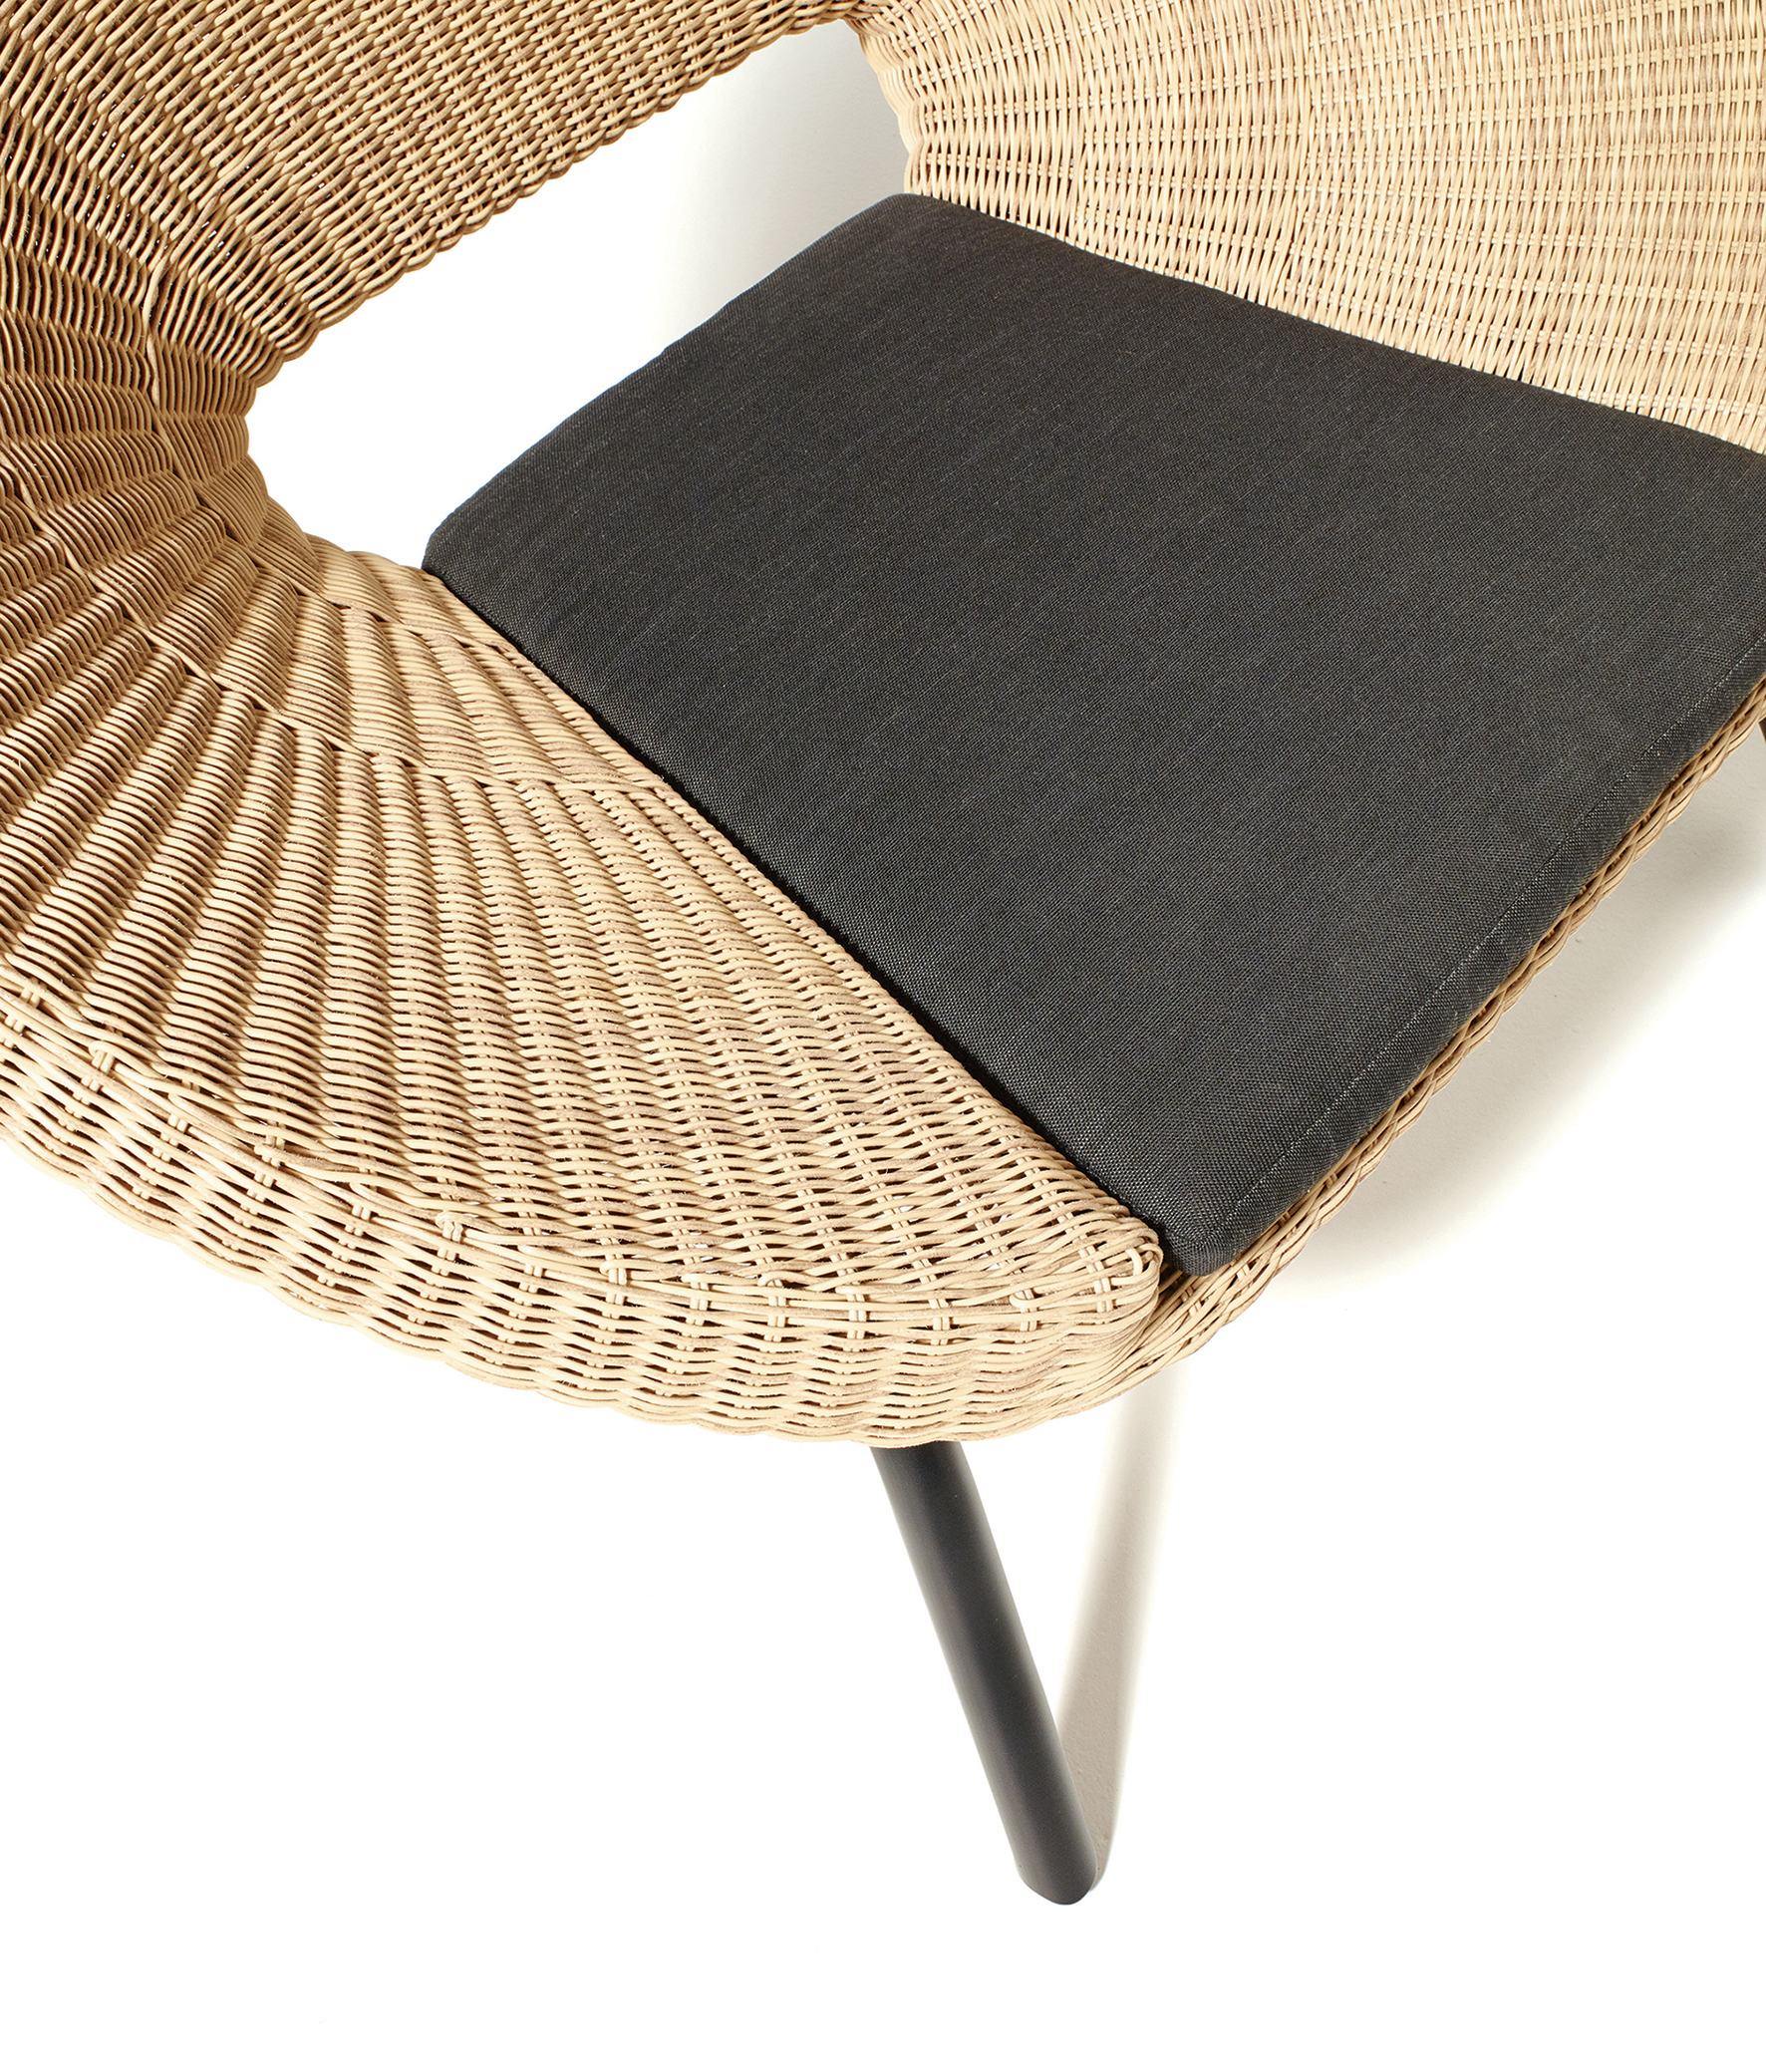 Blooma Garden Furniture Loa outdoor furniture for blooma on behance workwithnaturefo